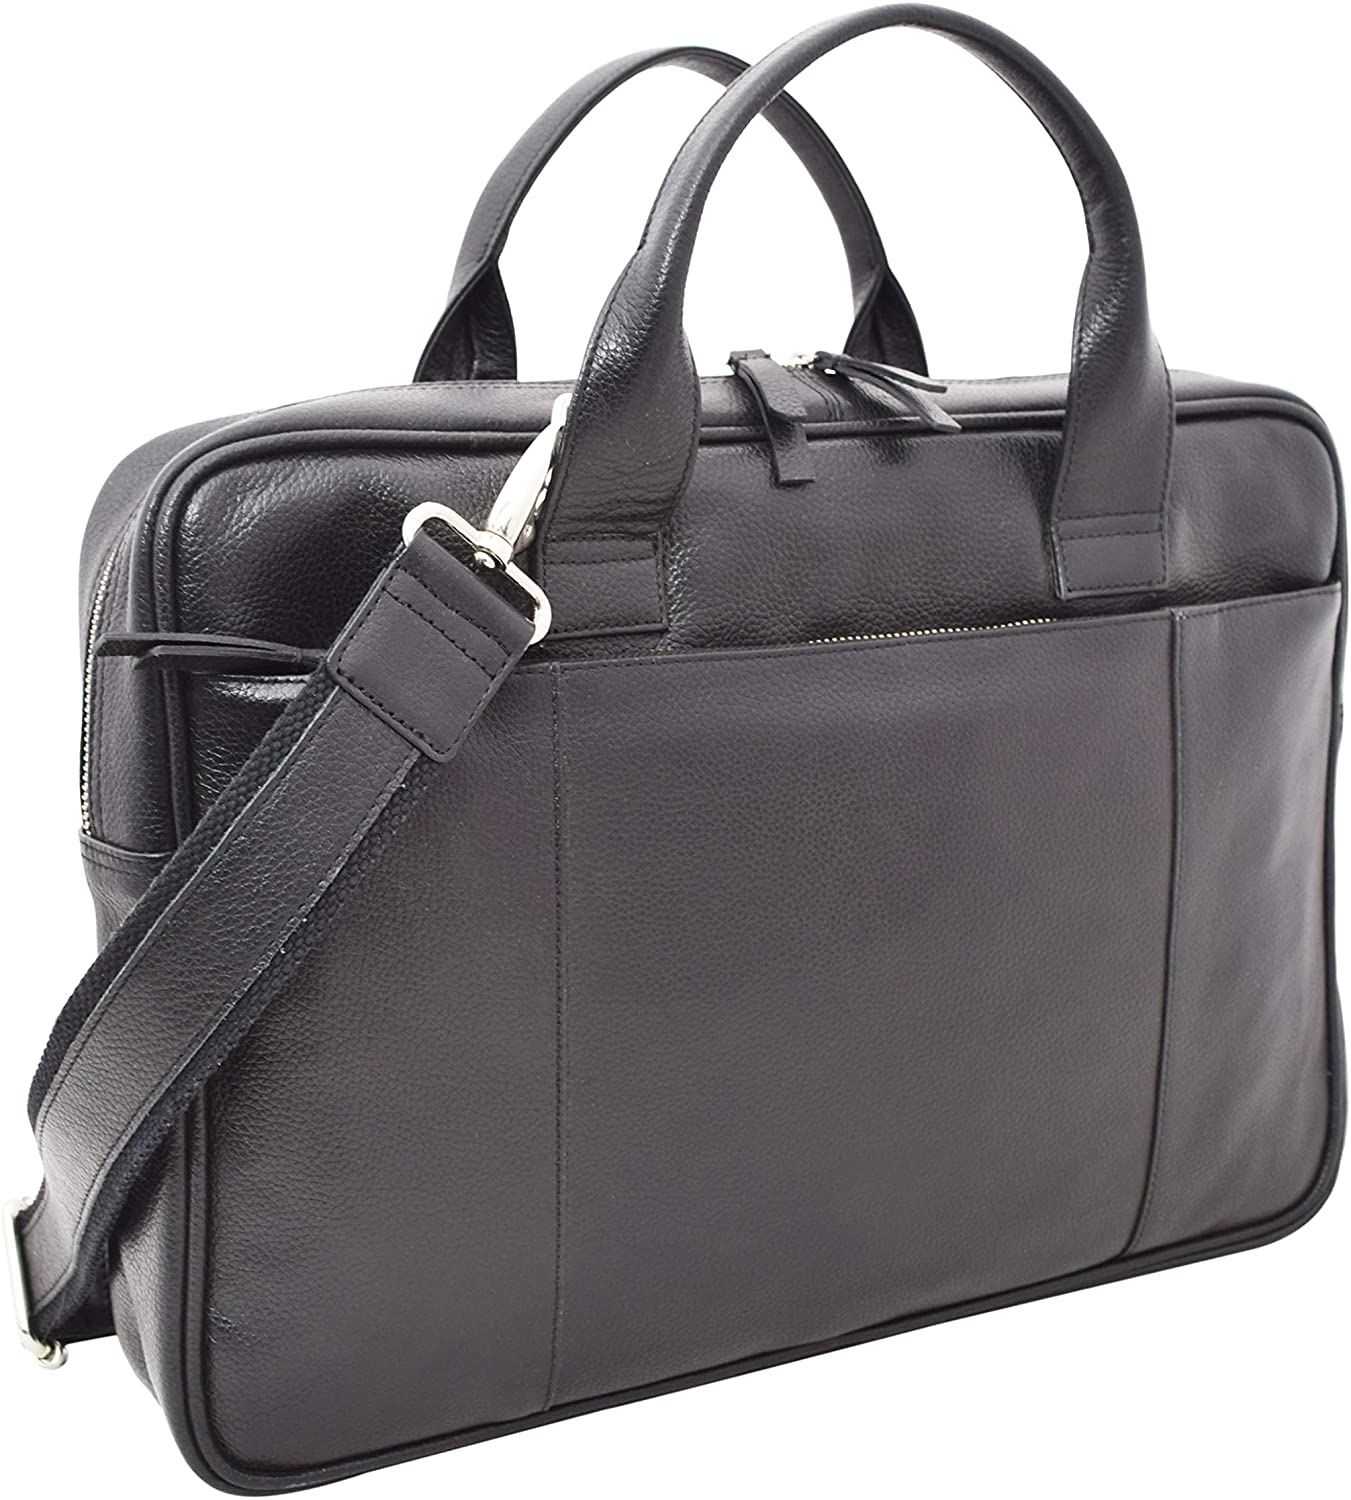 Men's Slim Leather Briefcase with Laptop Sleeve 15L x11H x 2.5W inches Black V-élan